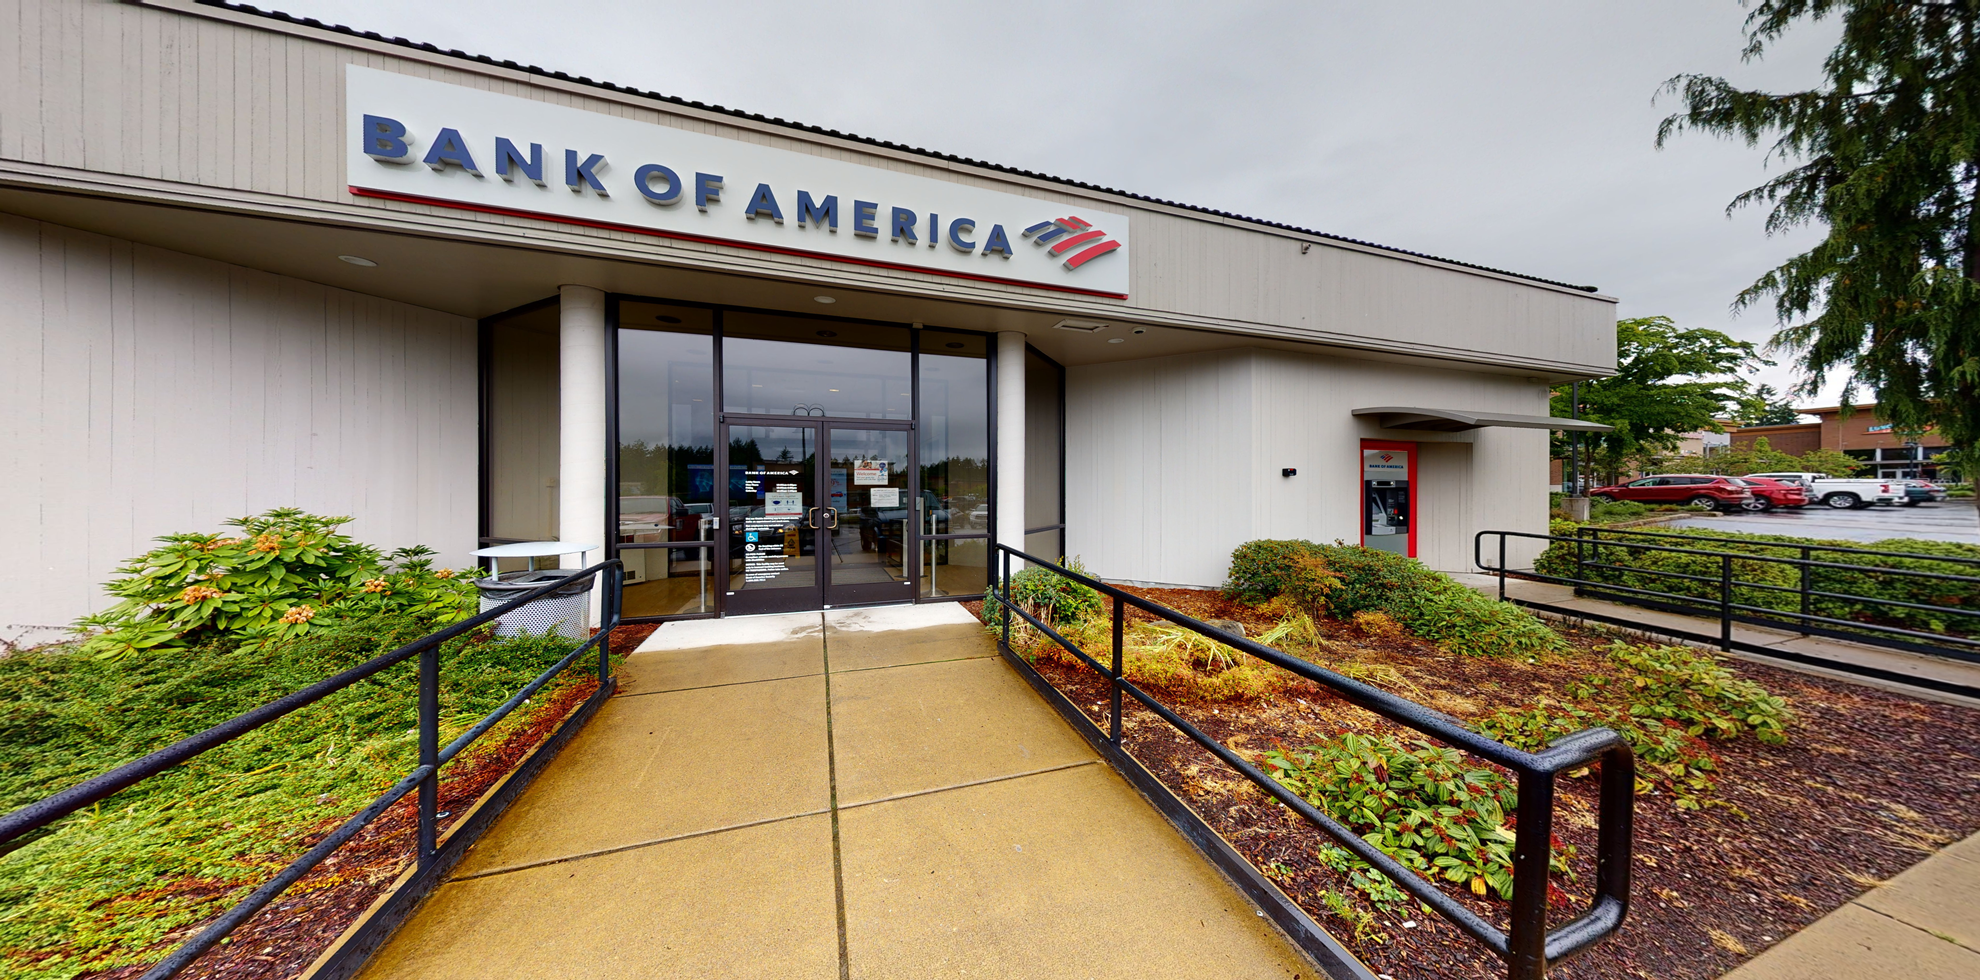 Bank of America financial center with drive-thru ATM   4815 Point Fosdick Dr NW, Gig Harbor, WA 98335